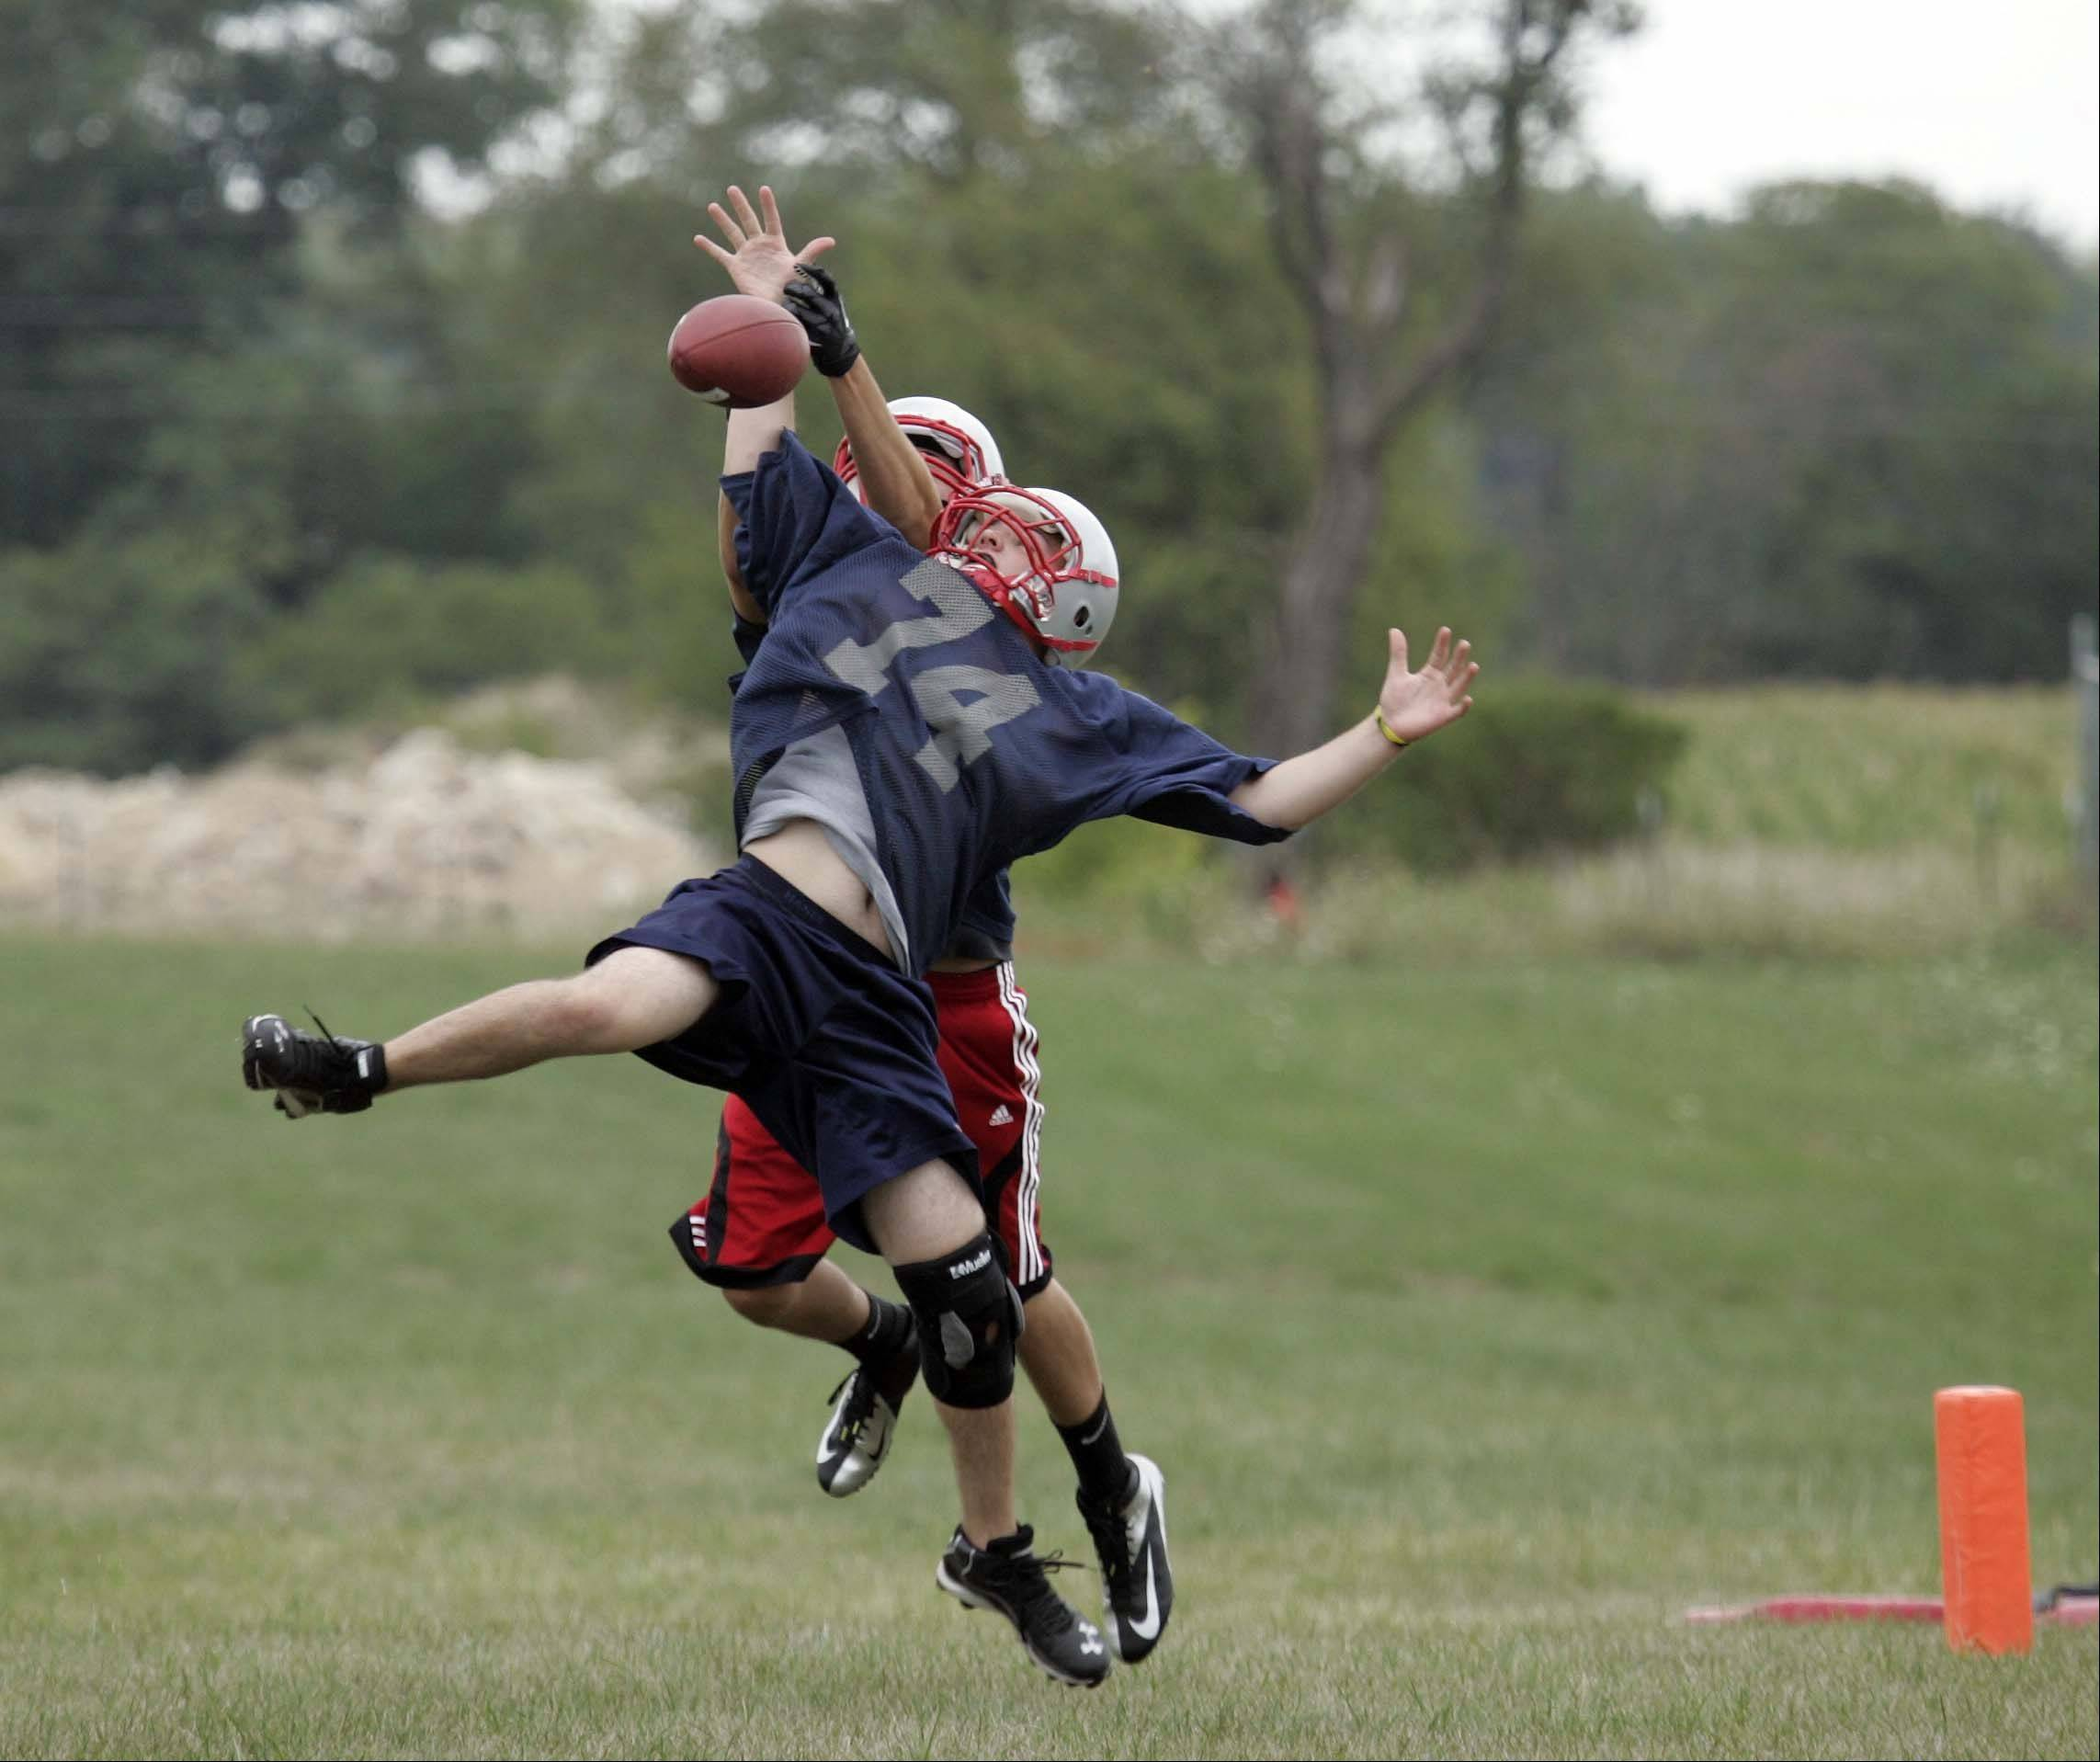 Pat McKay (74) tries to pull in a touchdown pass as Joe Lullo (82) defends during the first day of football practice at South Elgin on Wednesday.